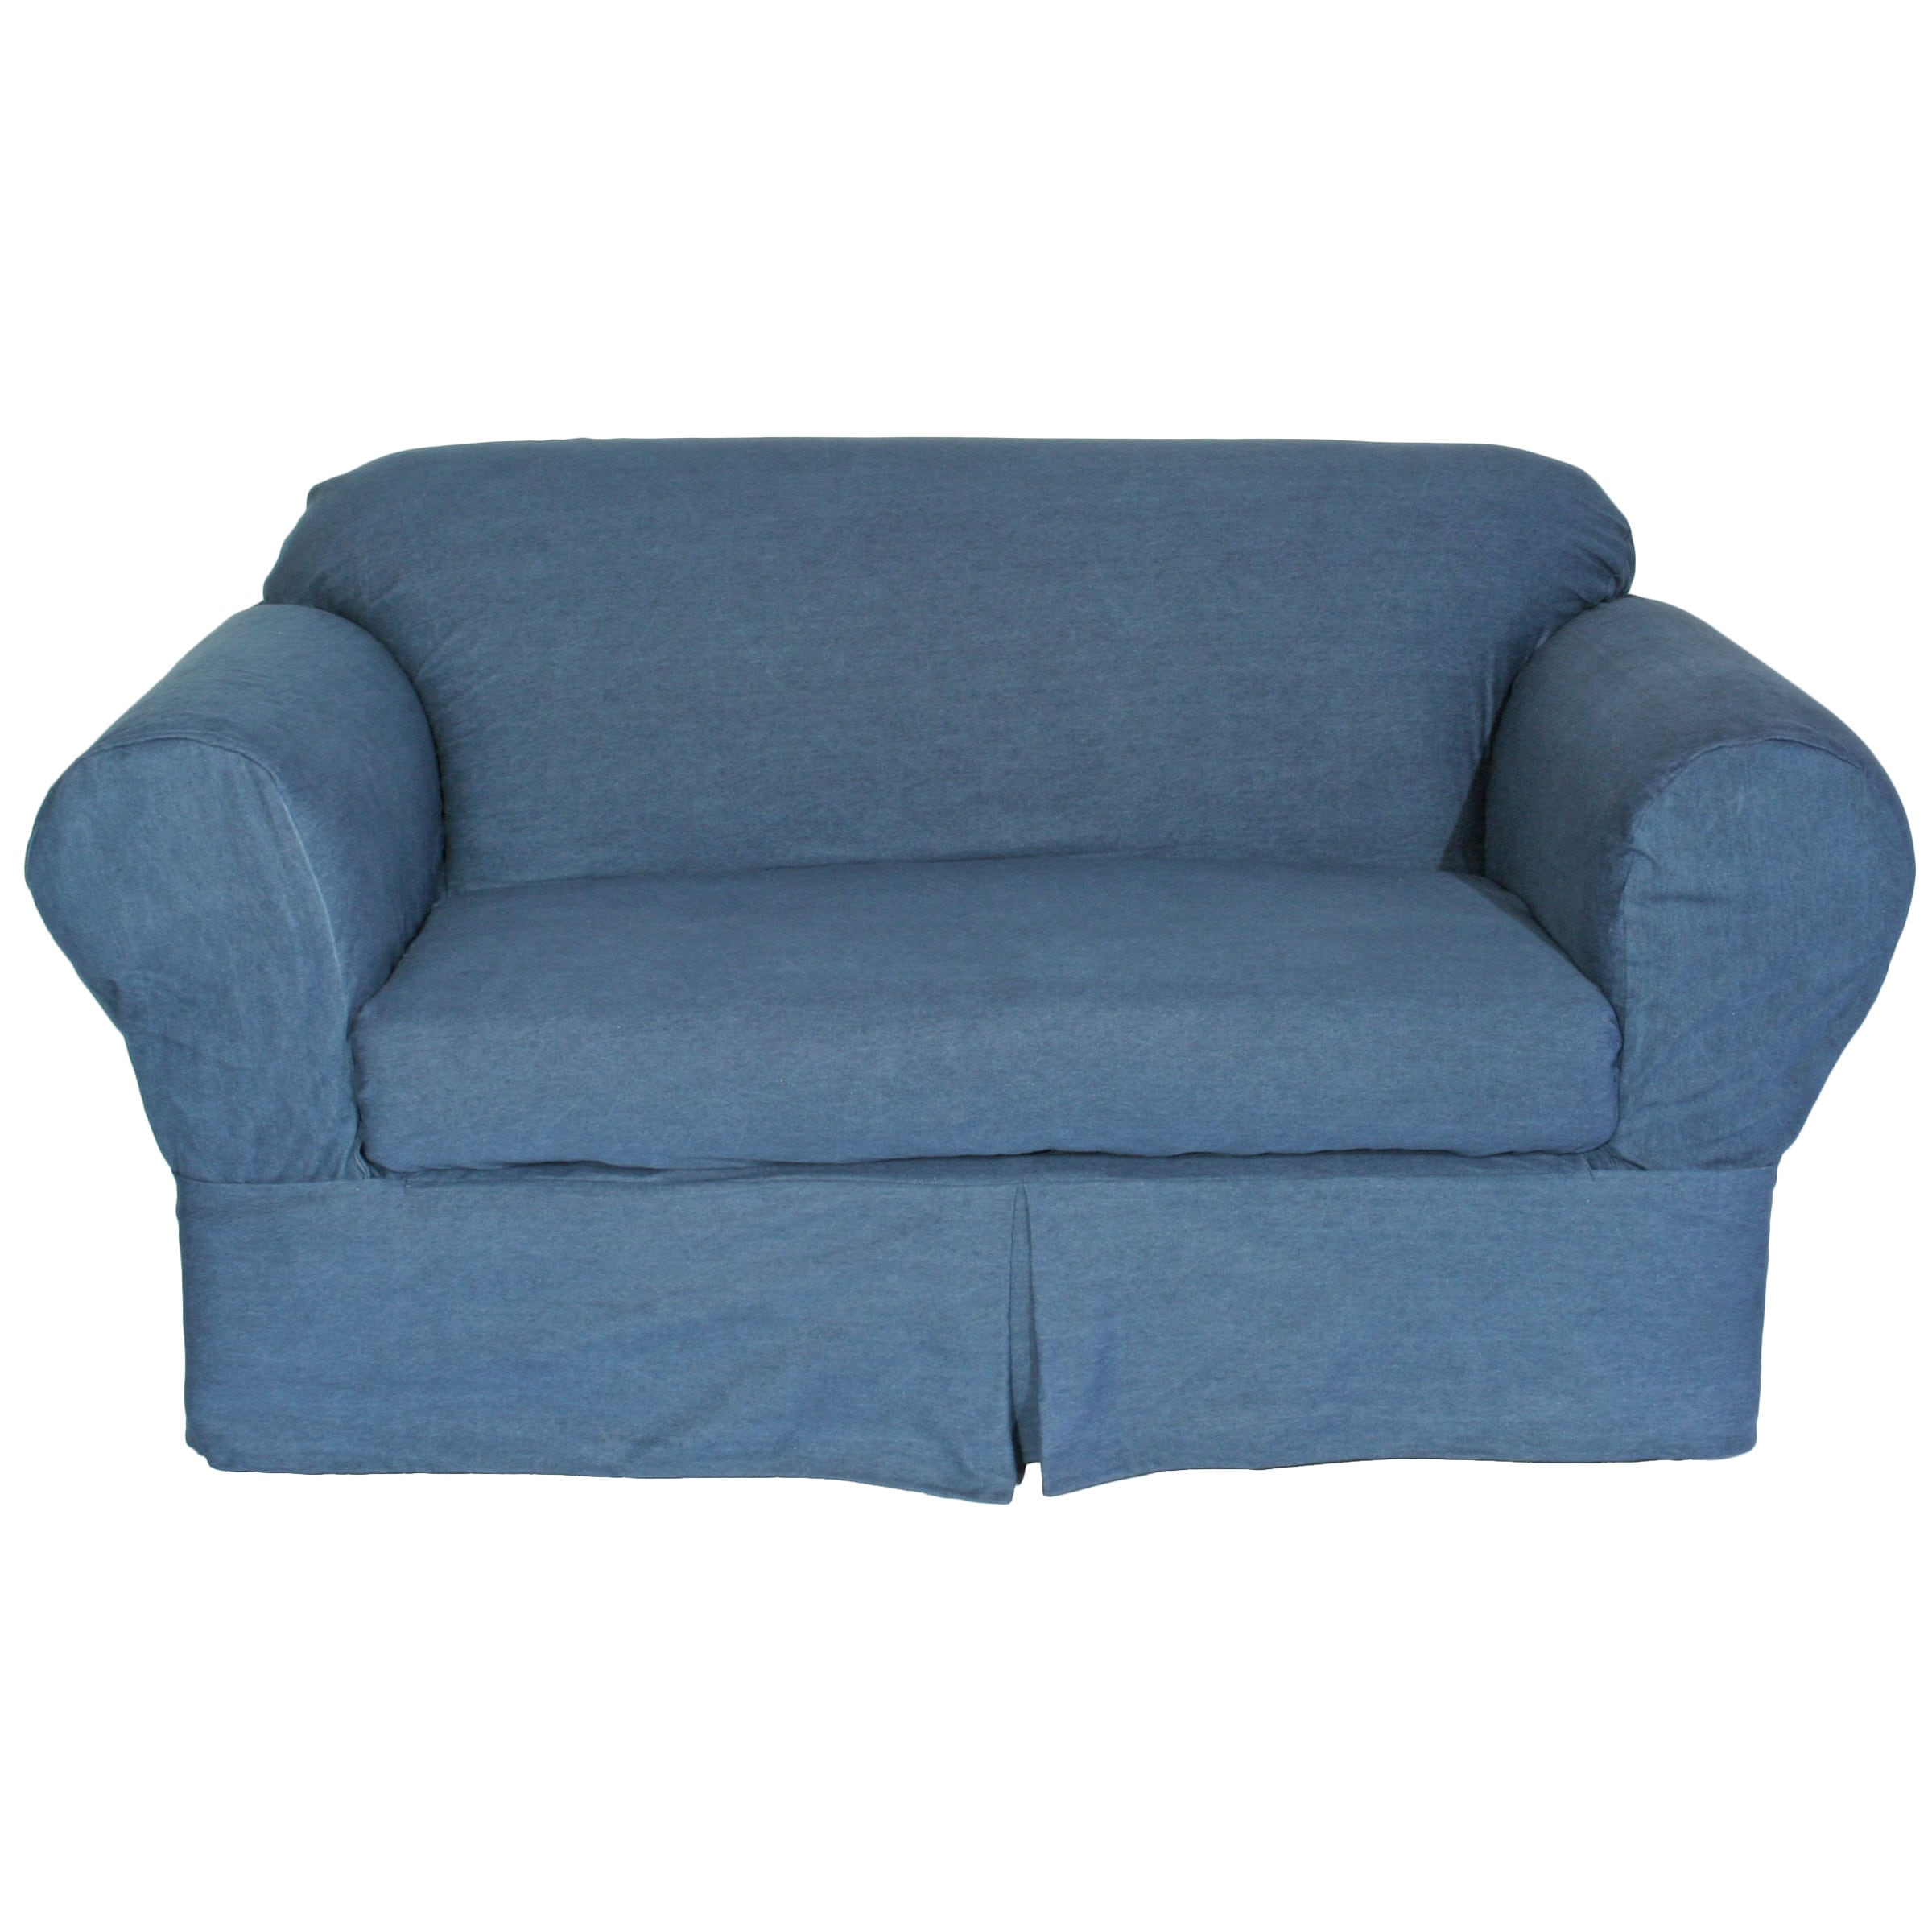 Shop Washed Heavy Denim Cotton 2-Piece Loveseat Slipcover - On Sale ...